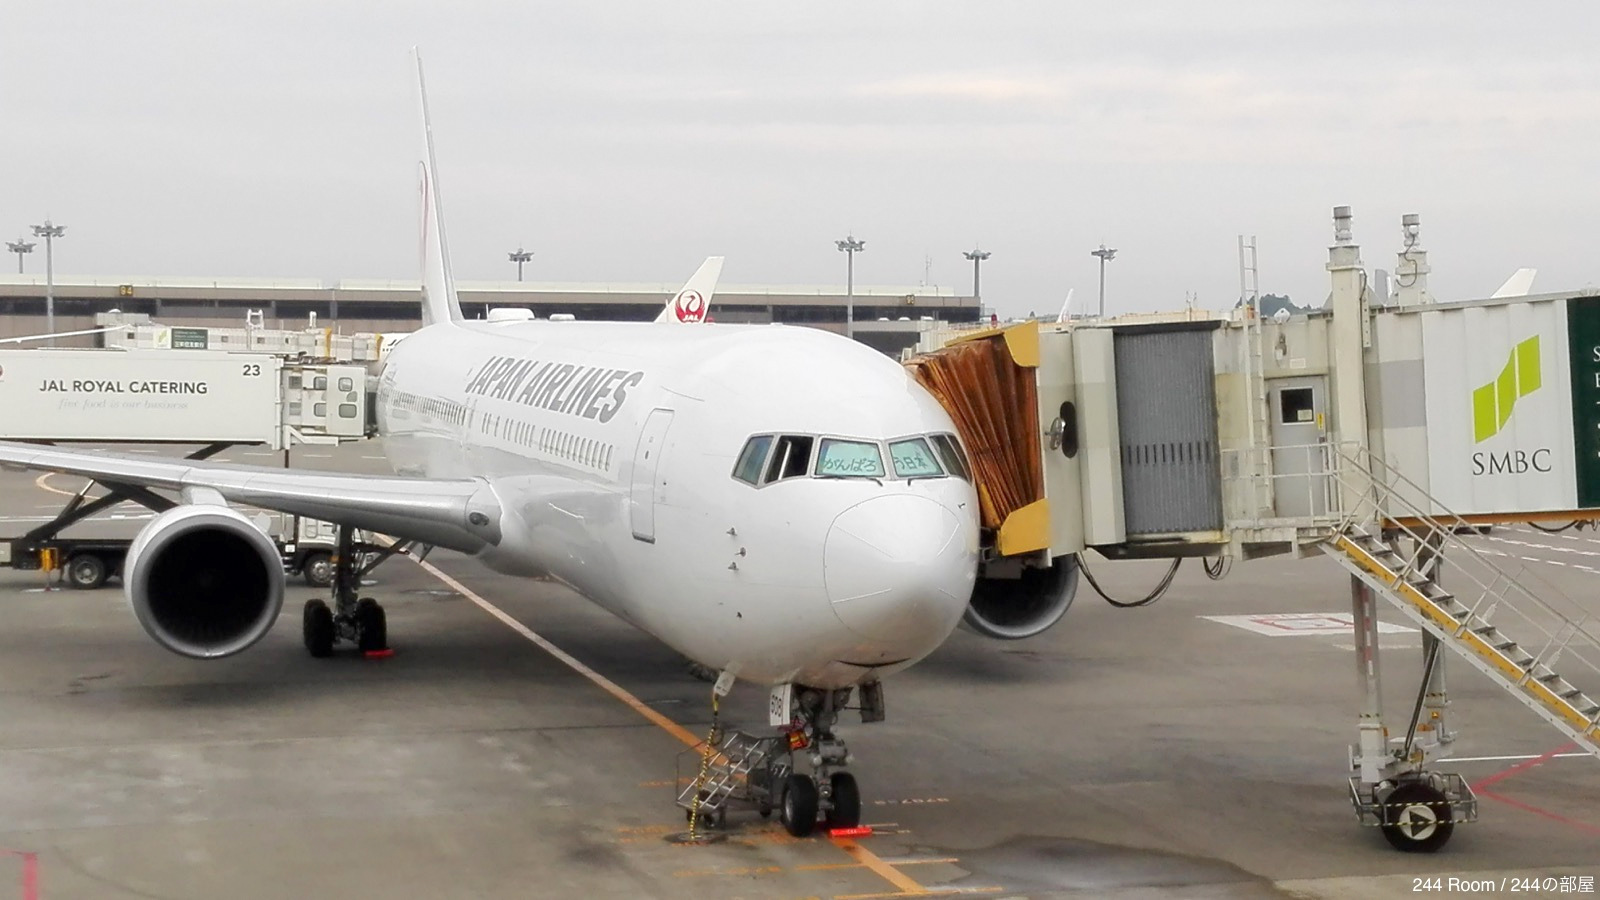 jal767-glass-wiping3